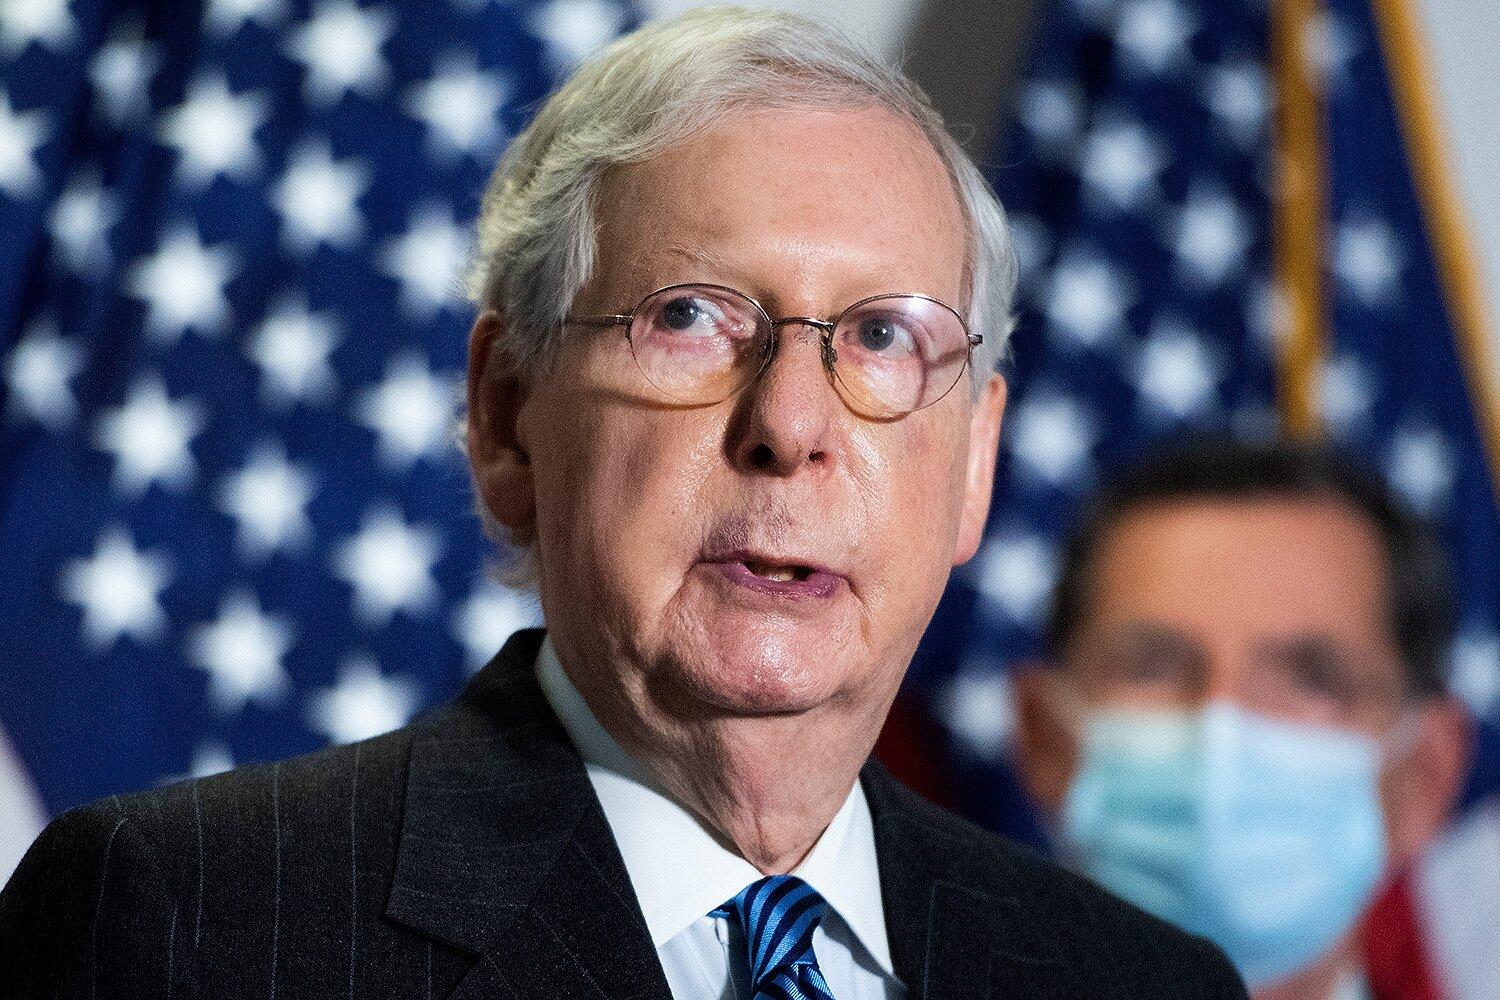 Mitch McConnell Waves Off Health Questions After Photos of ...